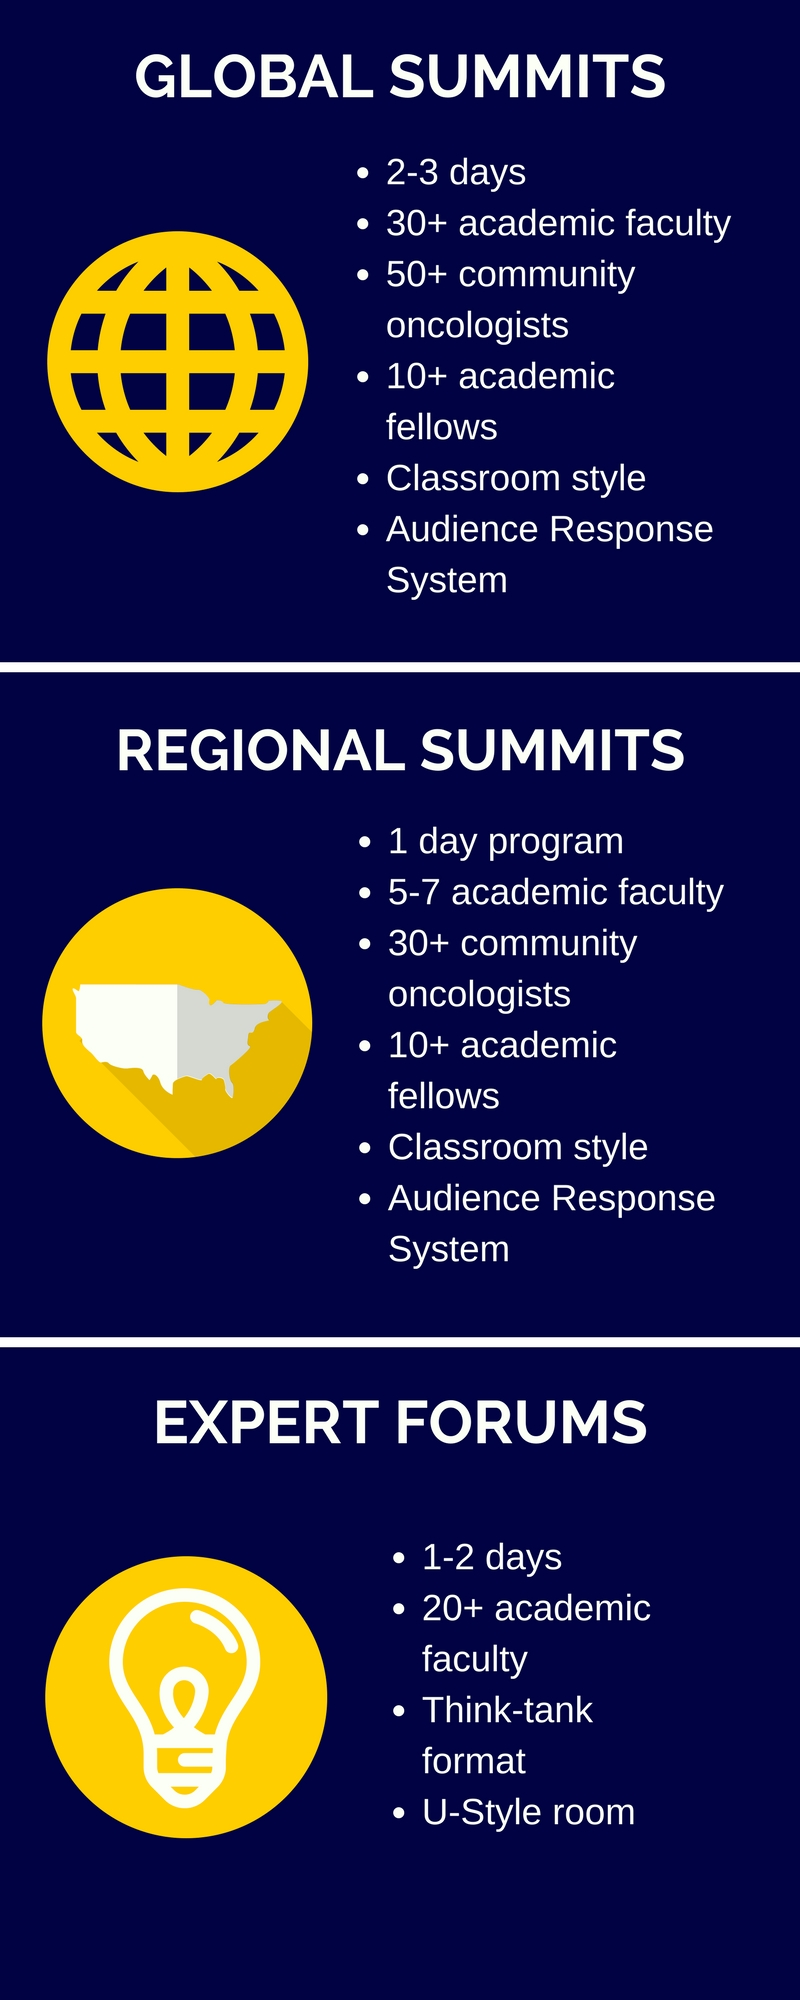 Oncology meetings, summits and expert forums